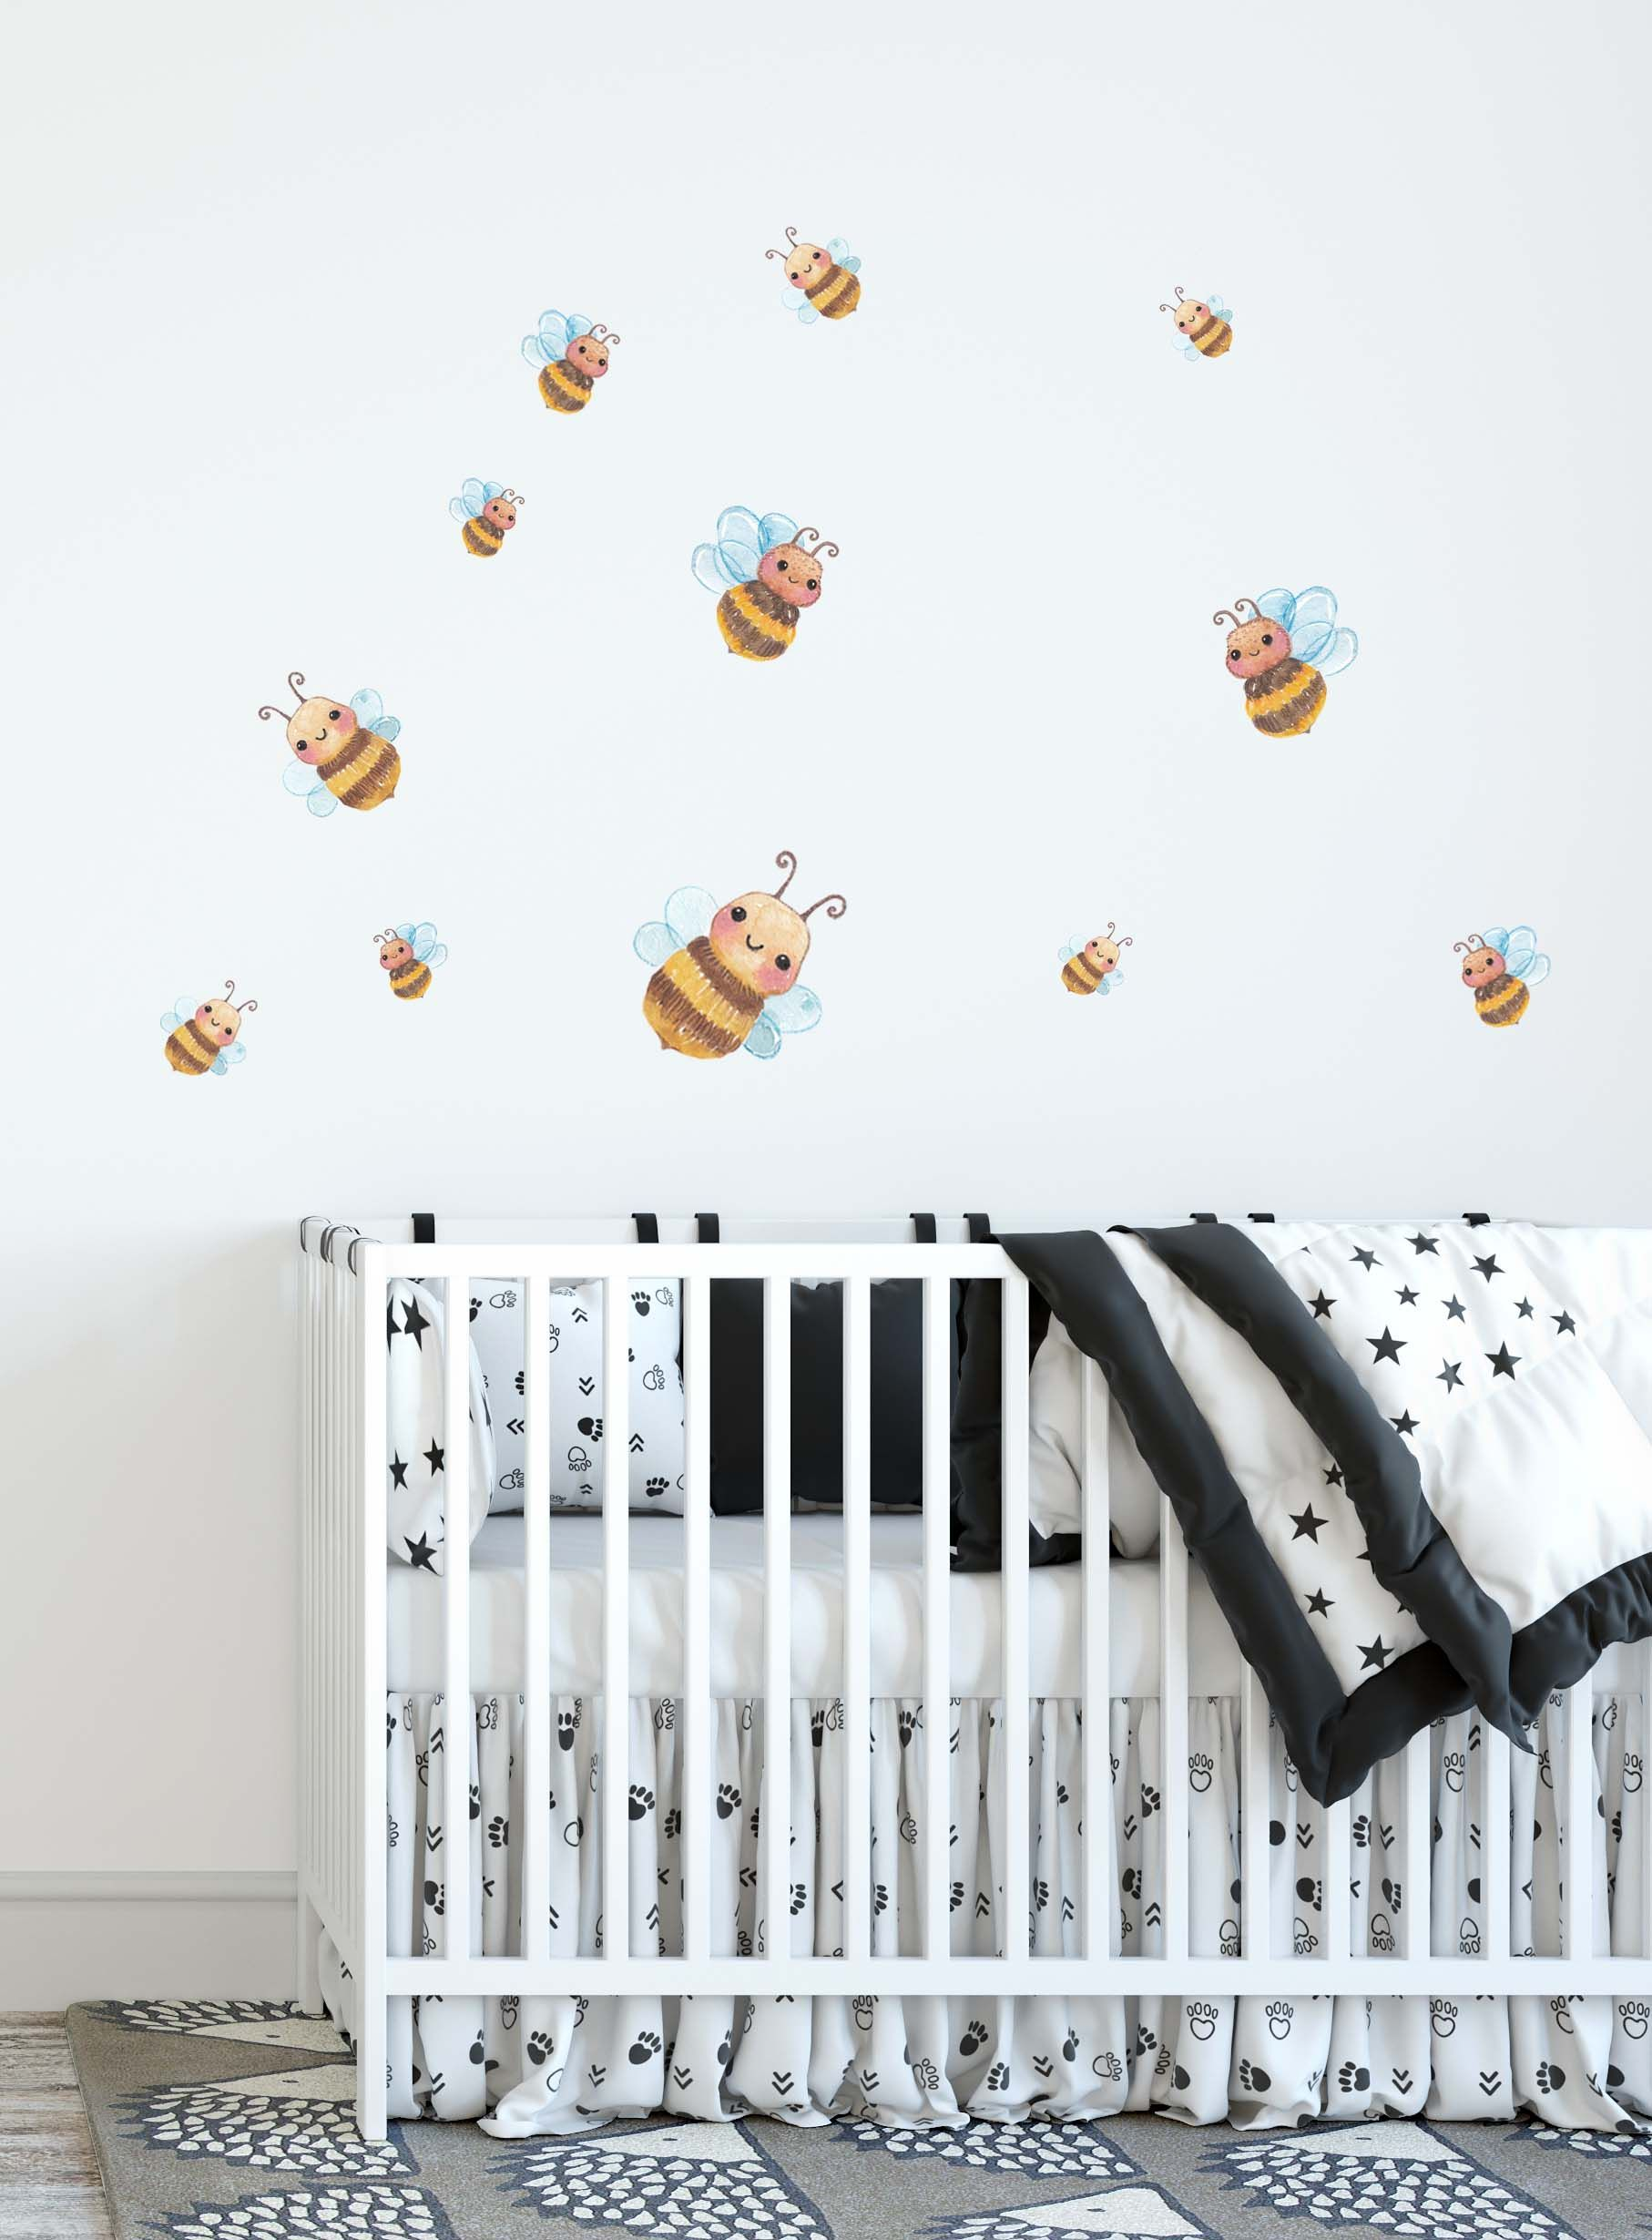 Bee Wall Decals Bee Fabric Stickers Toddler Watercolour Room Decor Animal Wall Stickers Butterfly Fabric Wall Decal Modern Nursery Decor In 2020 Fabric Wall Decals Modern Nursery Decor Nursery Wall Decals